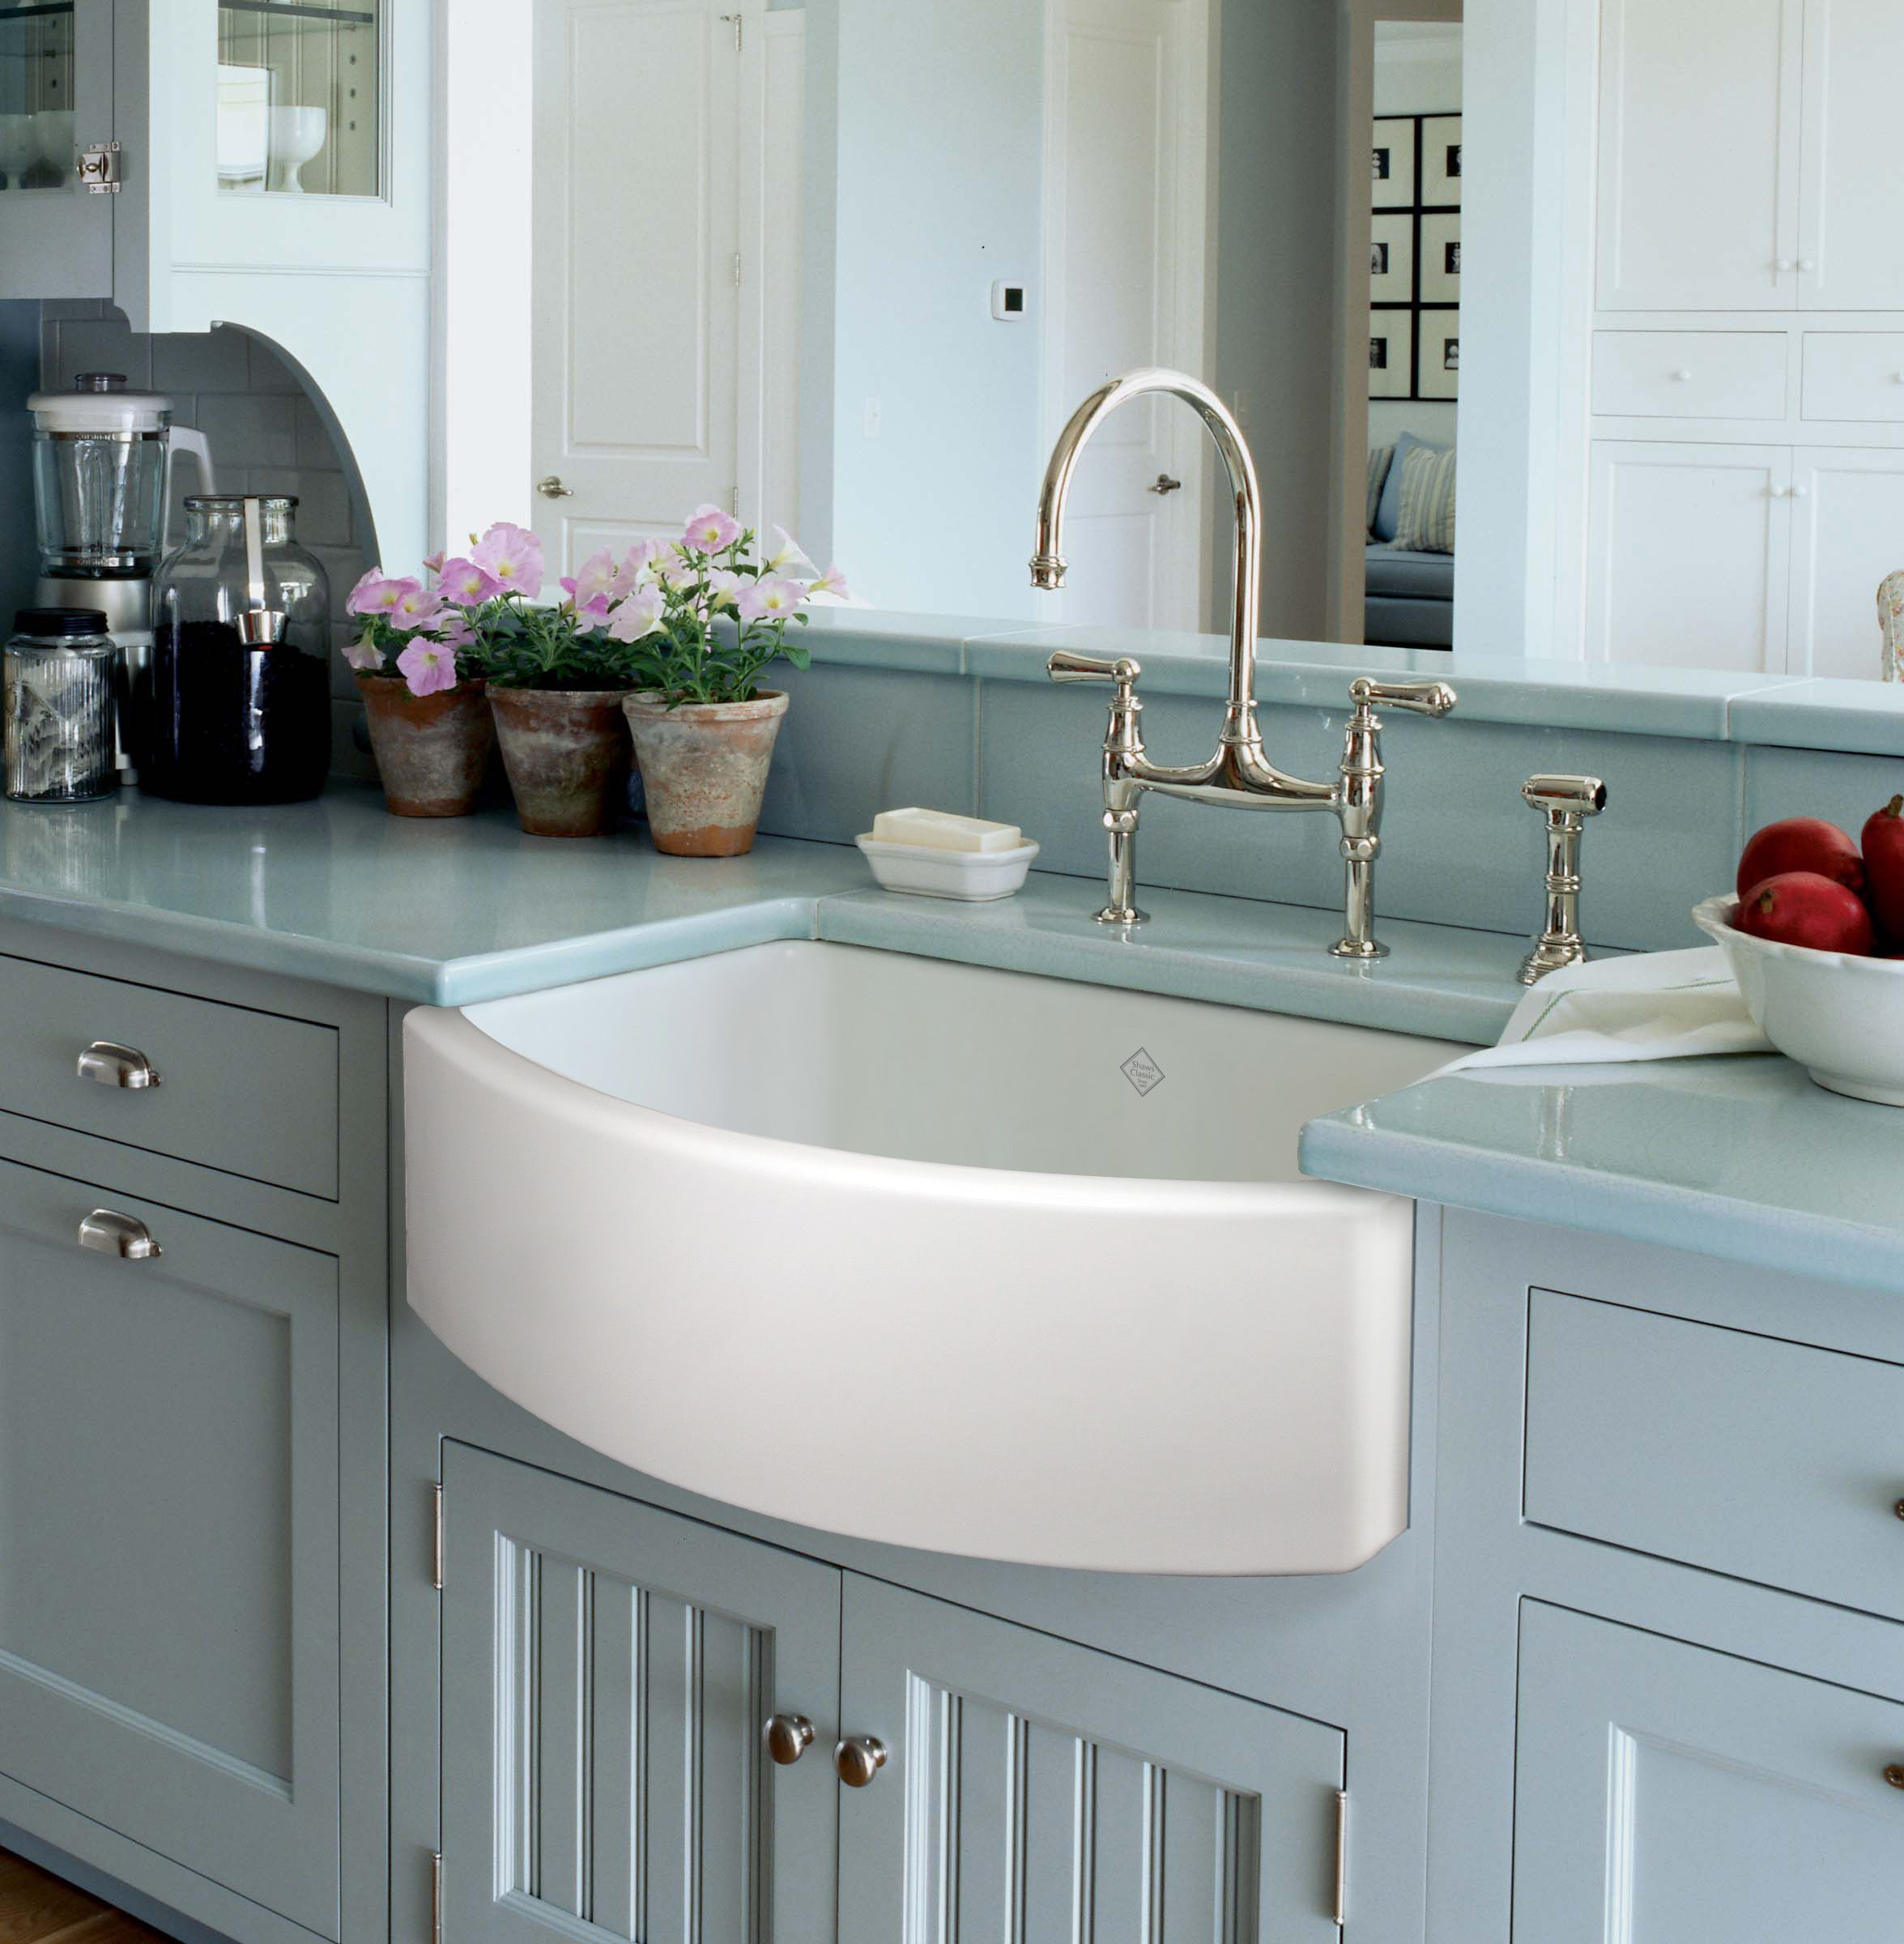 Fireclay Kitchen Sink Bench Seating With Storage Rohl Shaws Original Waterside Apron Front